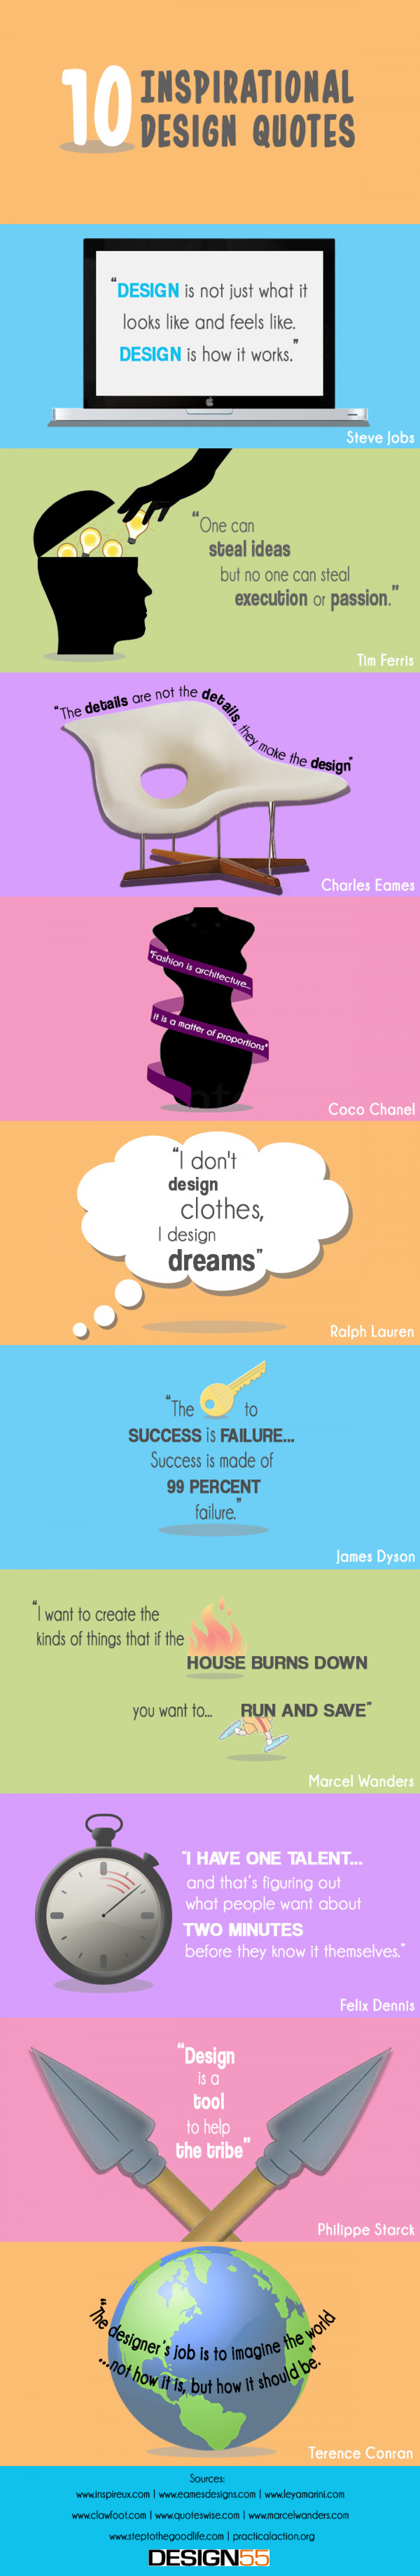 Ten Inspiring Design Quotes Infographic